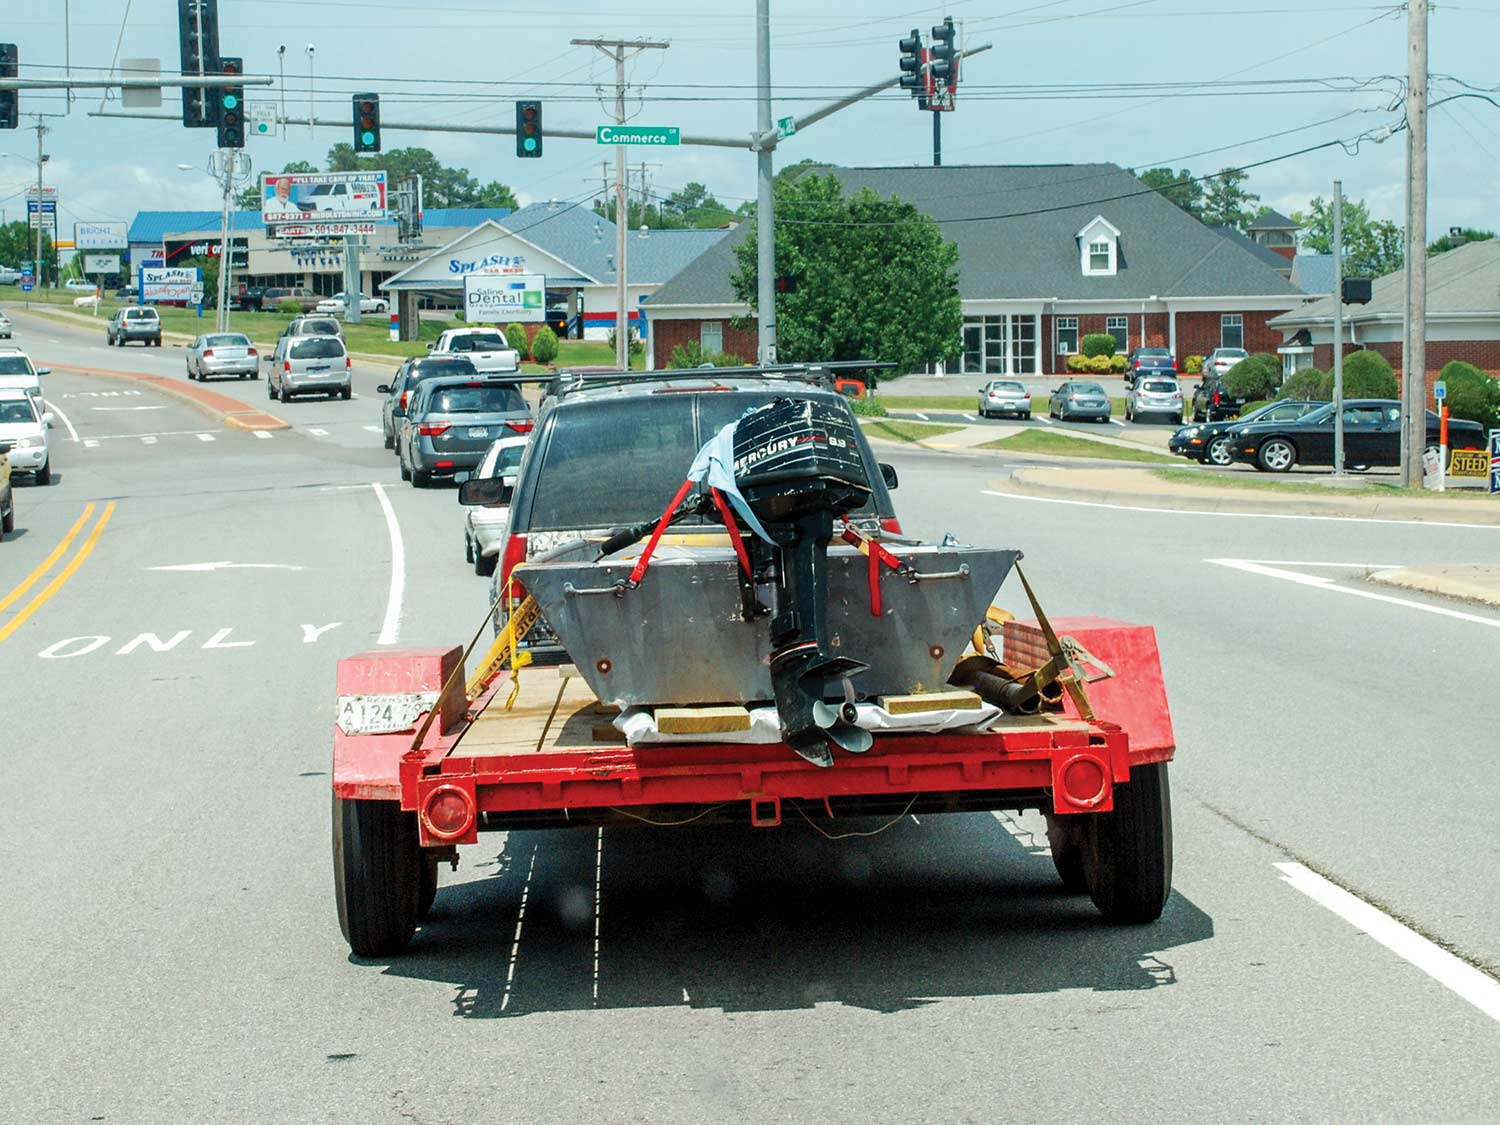 An SUV hauling a boat on a trailer.